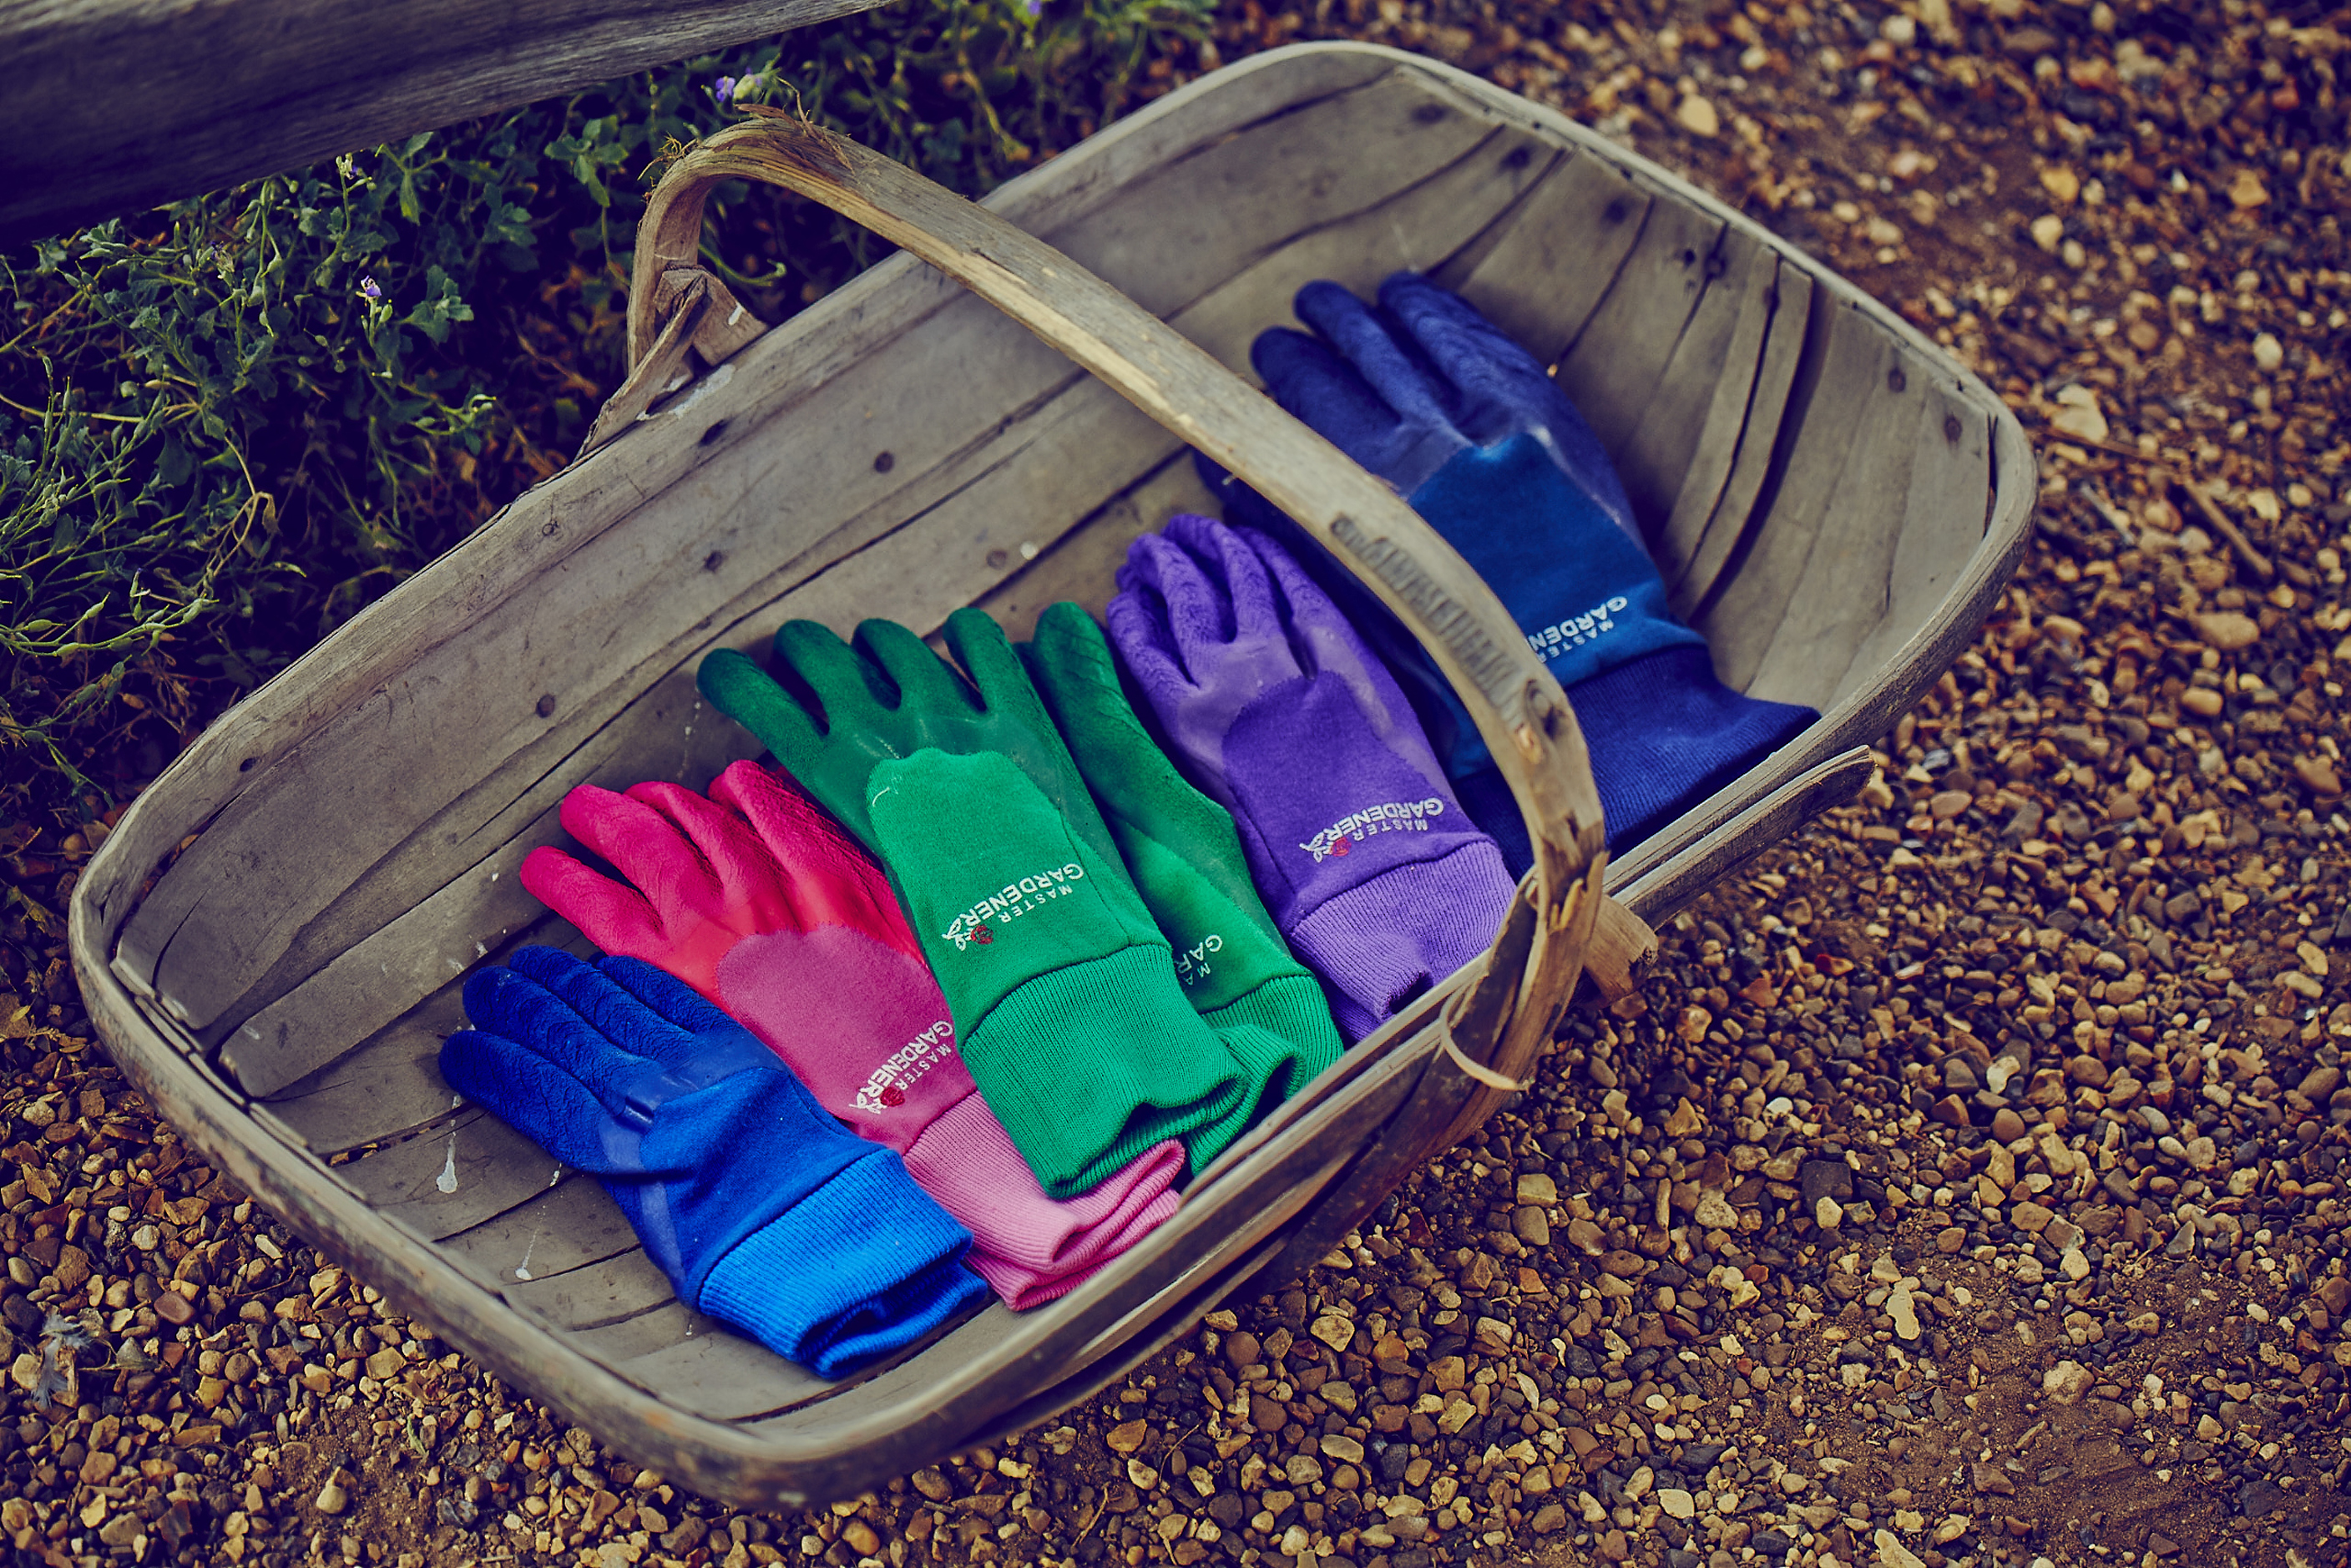 A new pair of gardening gloves always goes down well (Town & Country/PA)